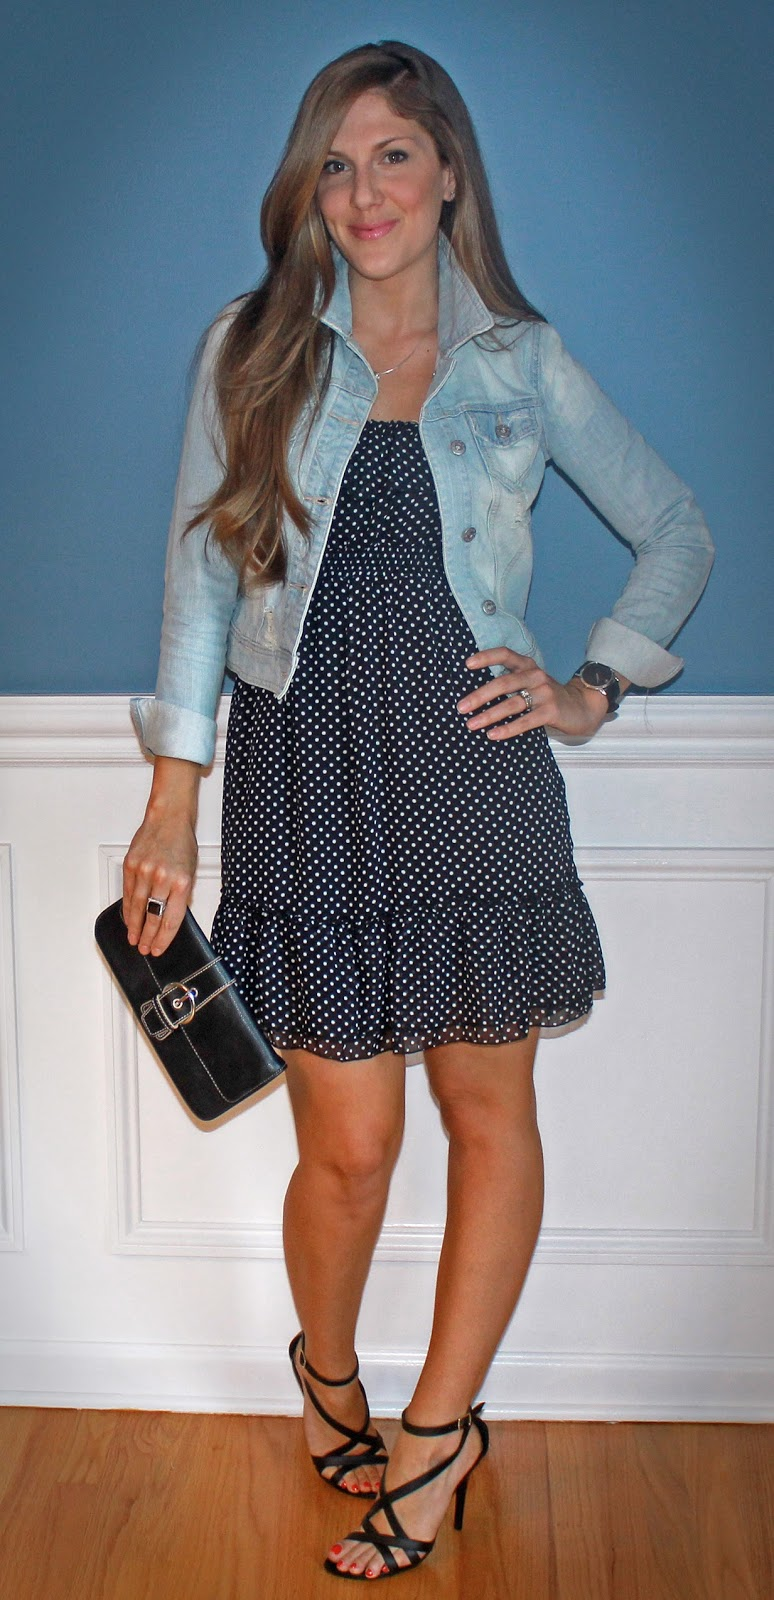 b22f214b22e3c Outfitted411: Denim and Dots...